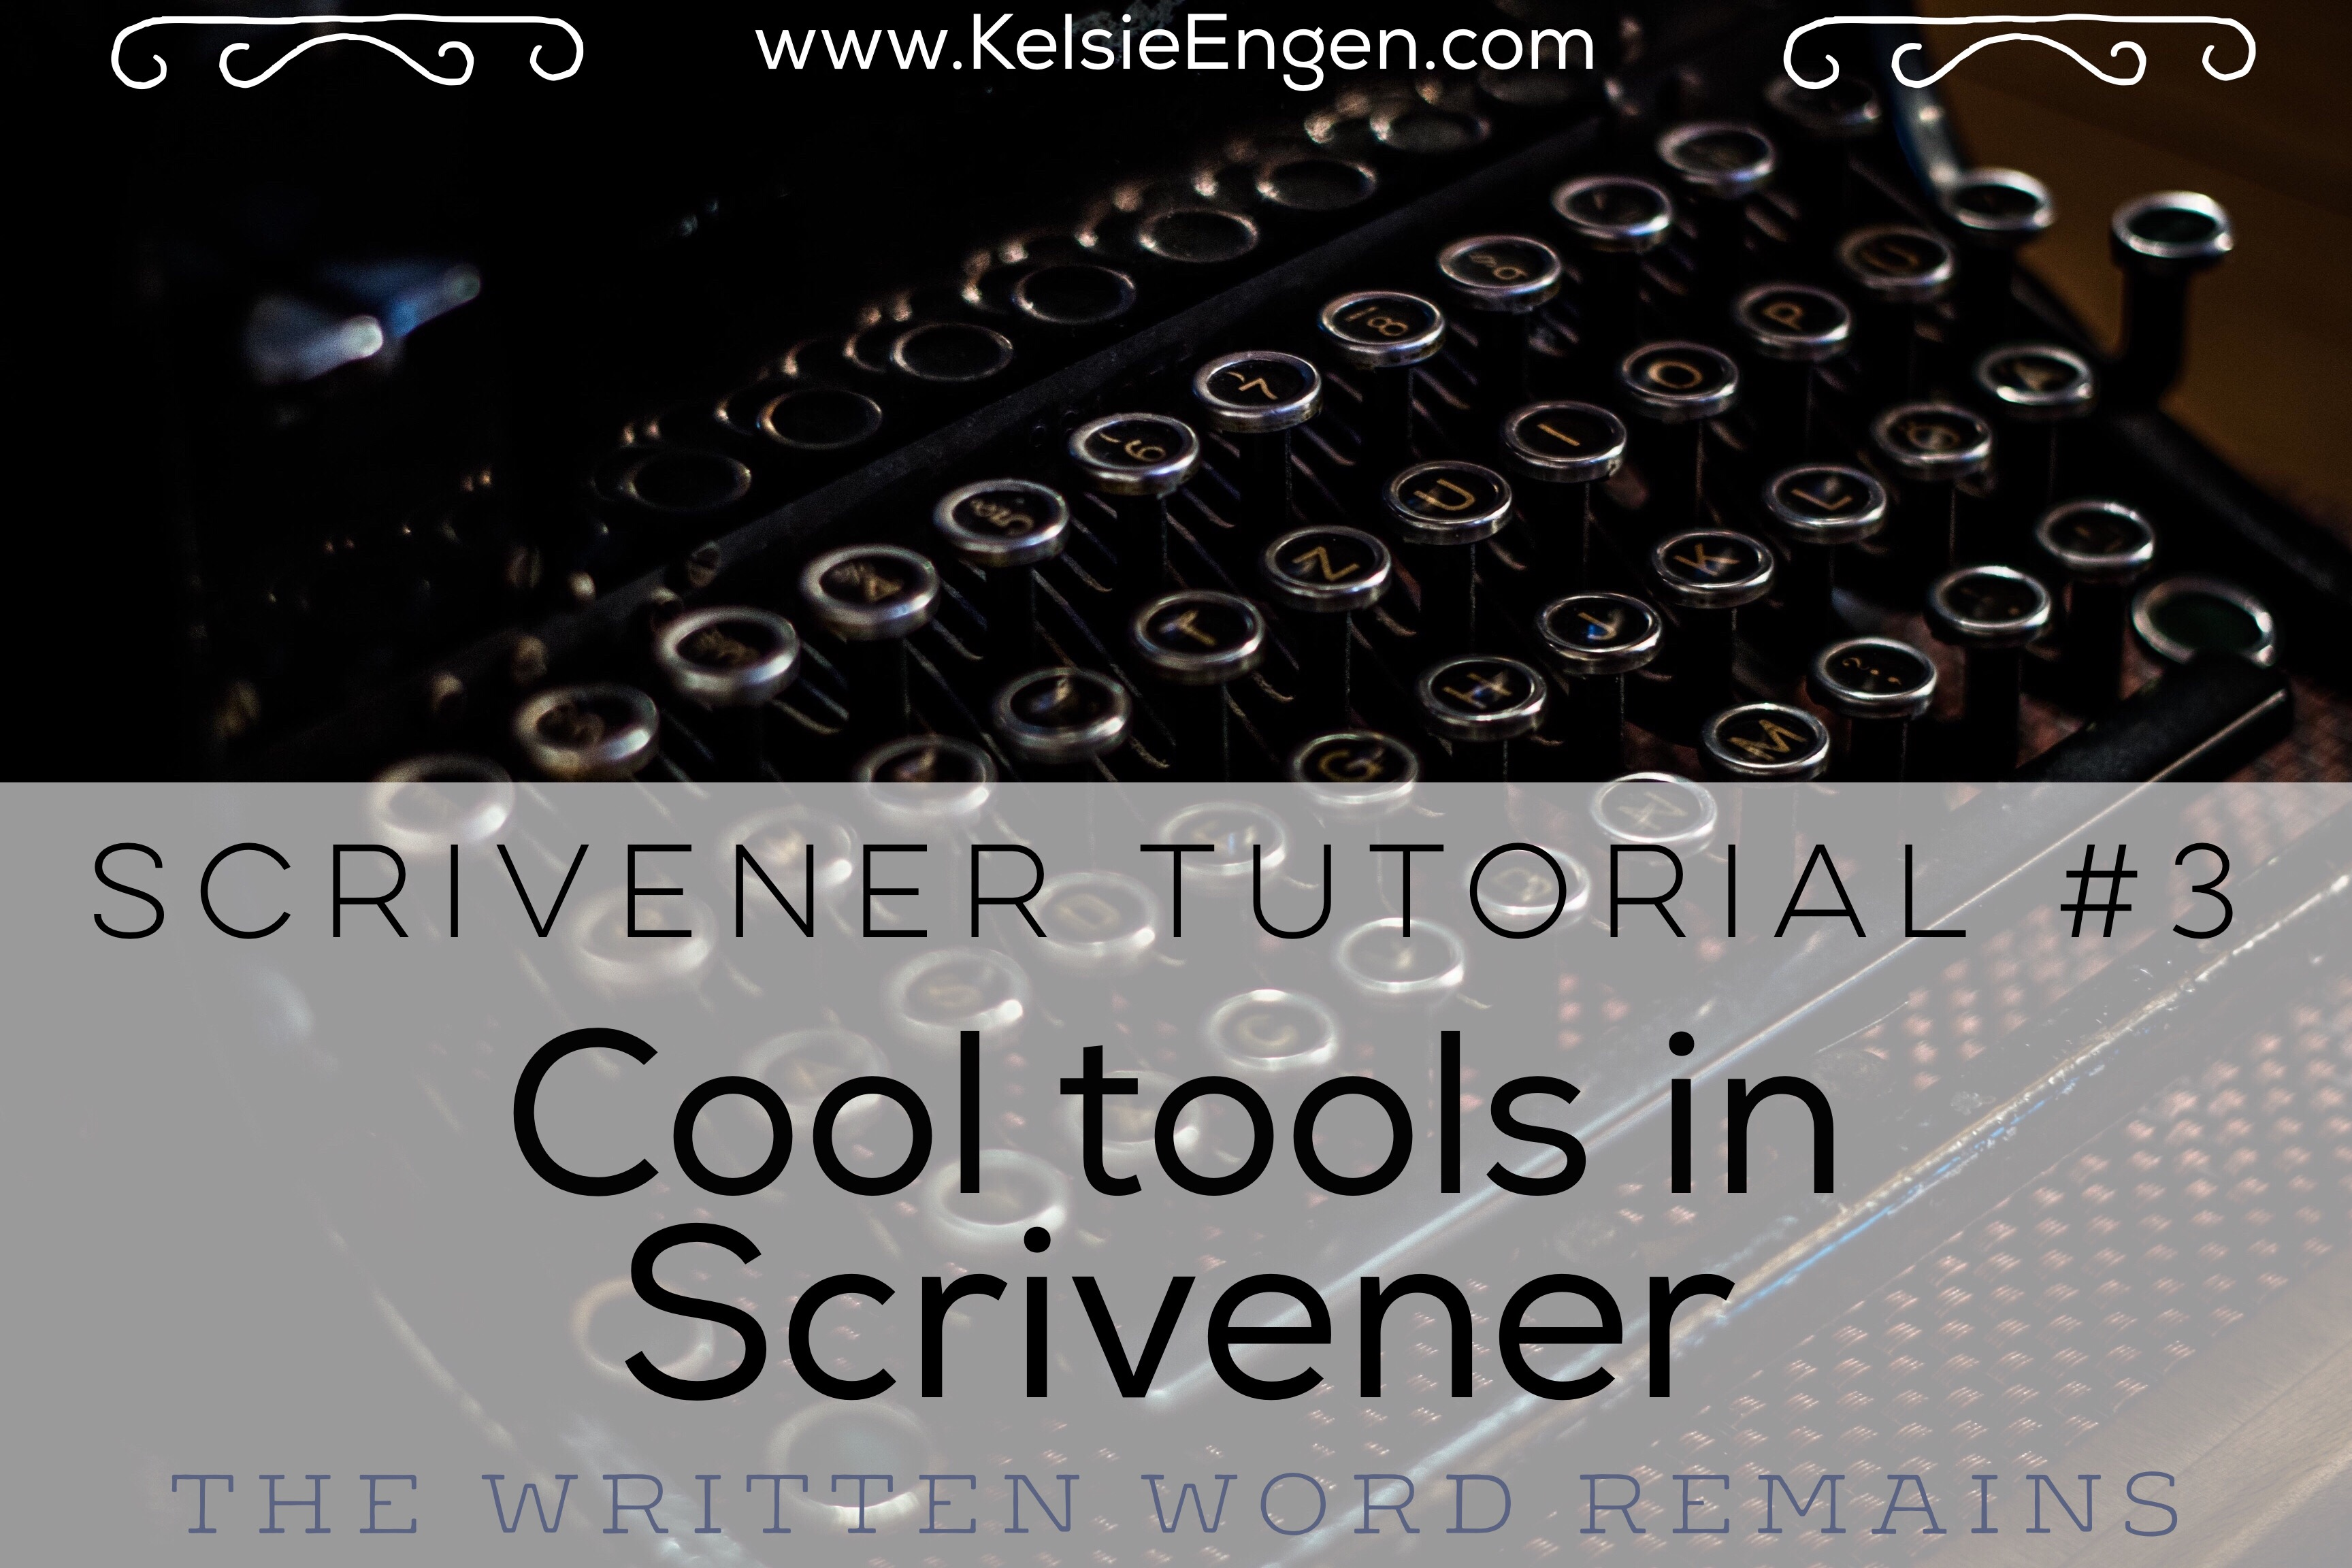 Scrivener Tutorial #3: Cool Tools in Scrivener